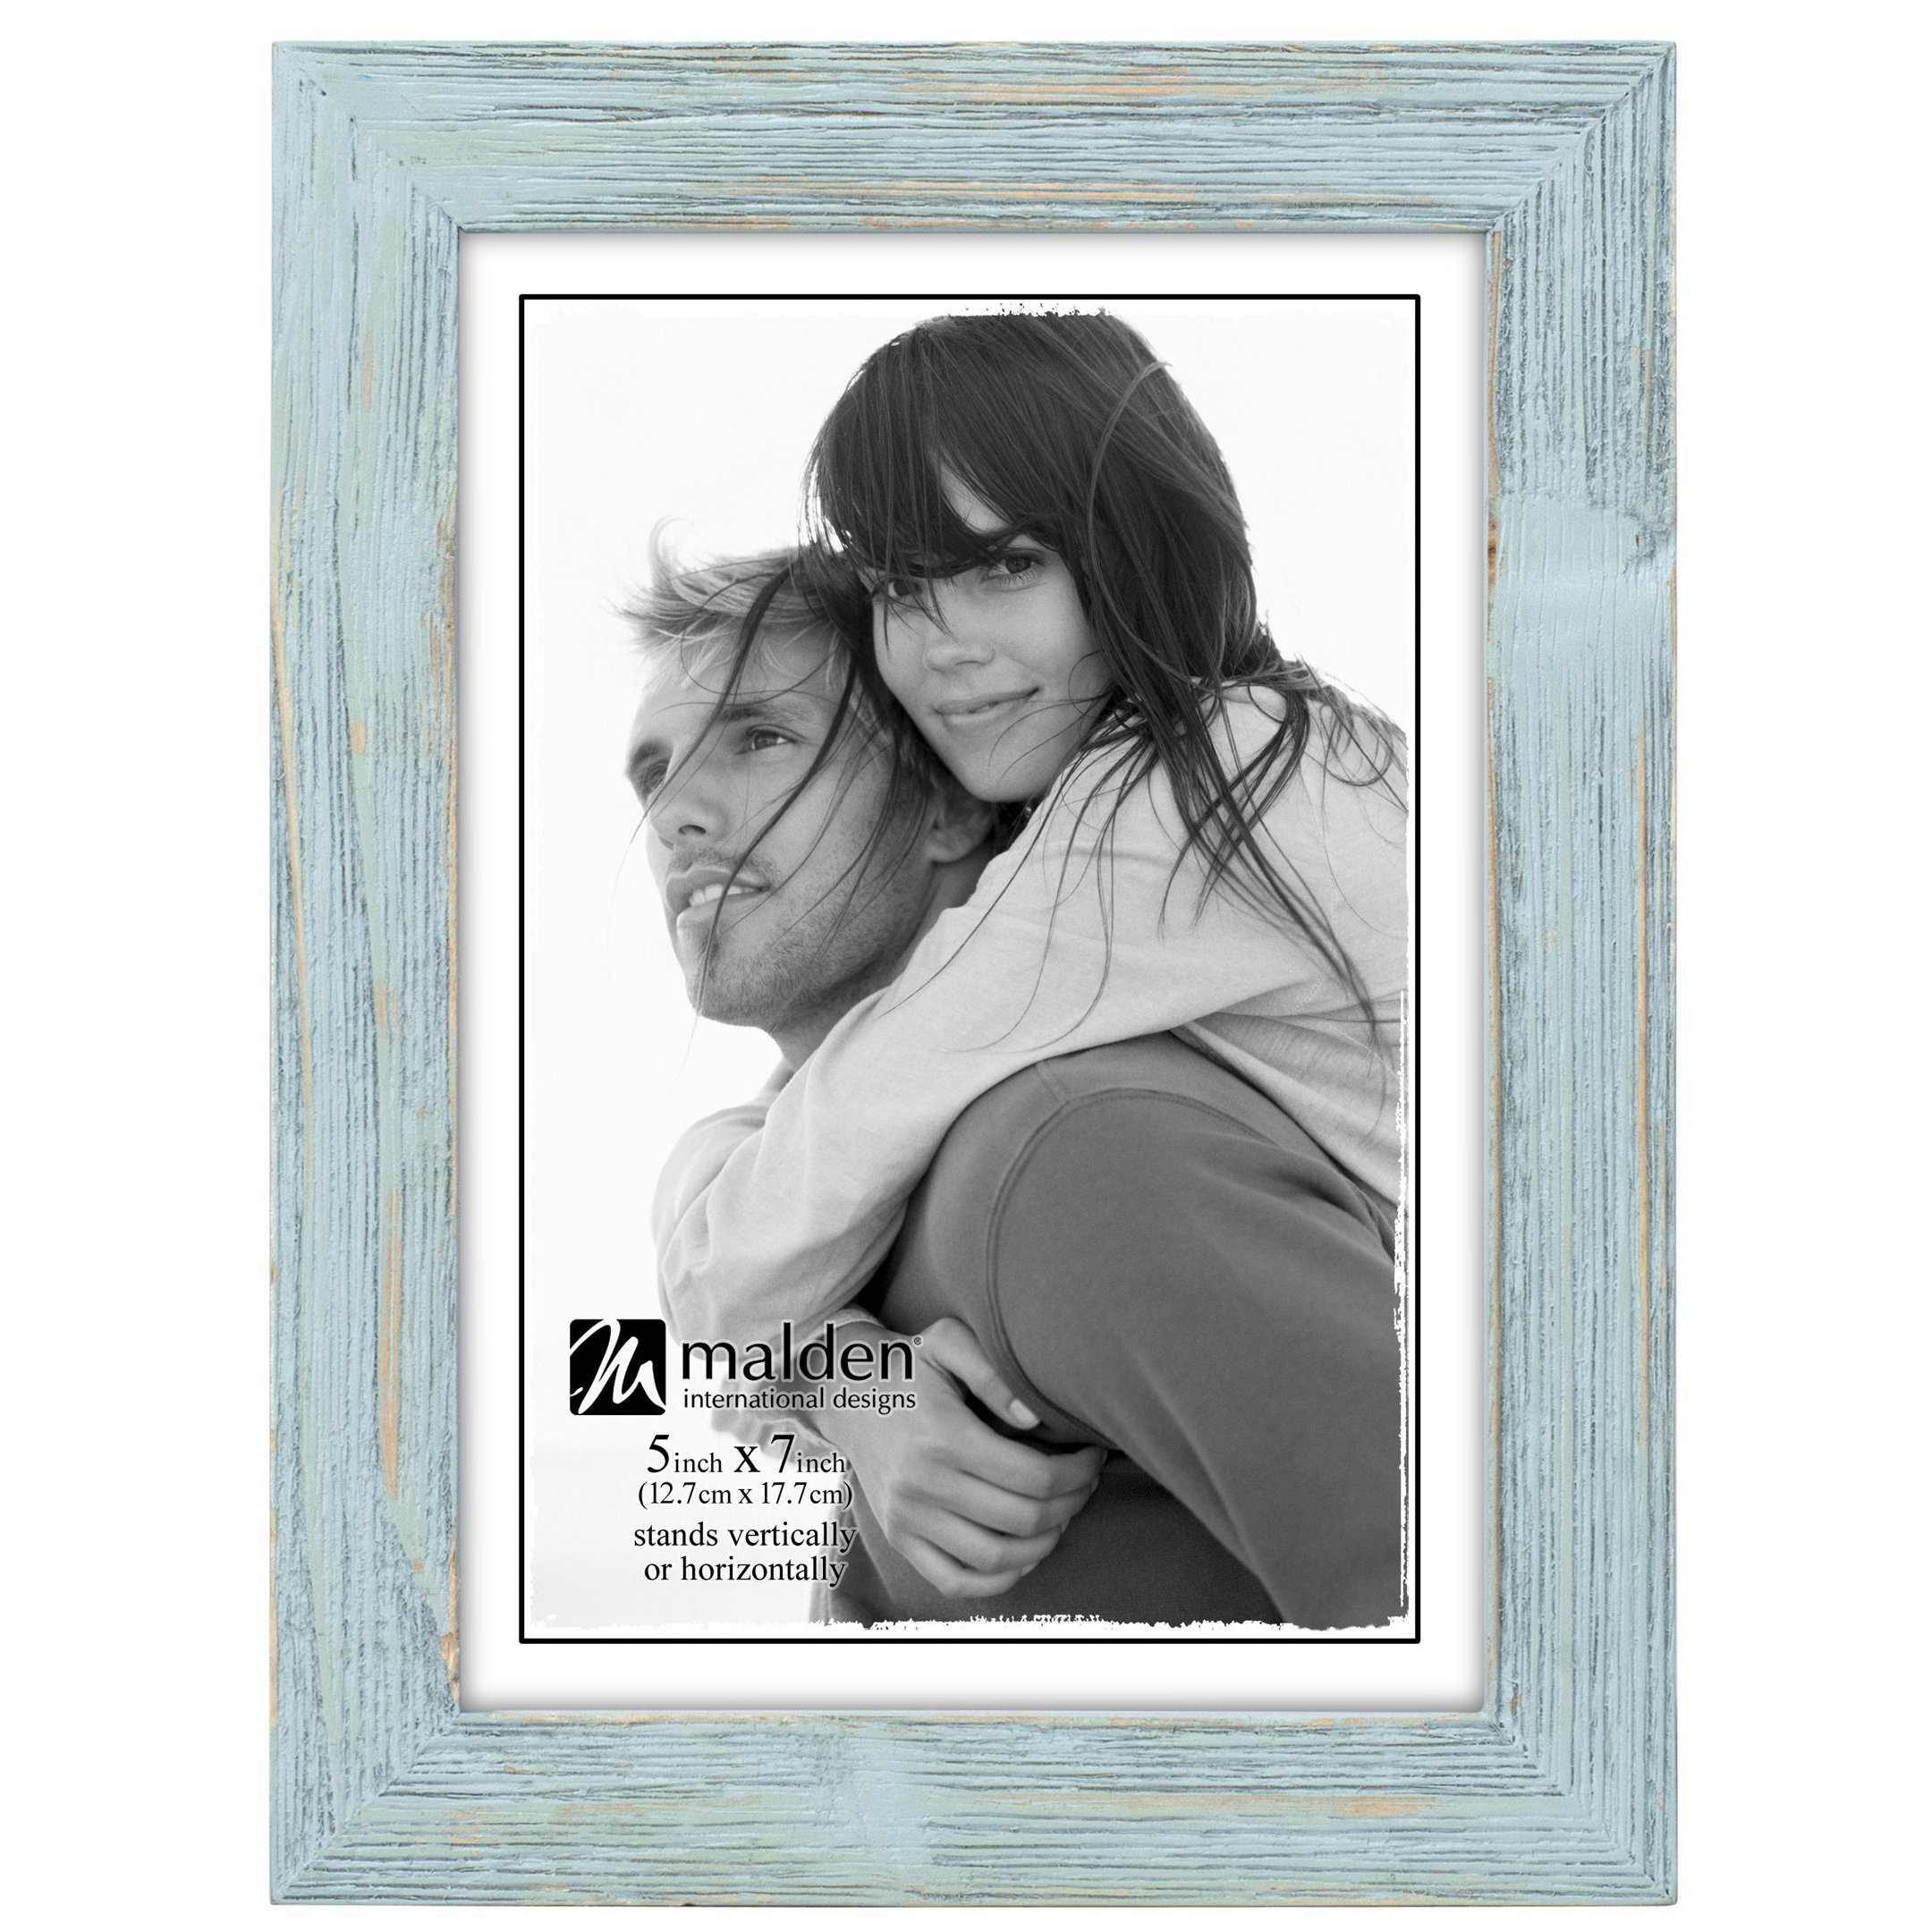 Malden International Designs 807-57 Linear Picture Frame